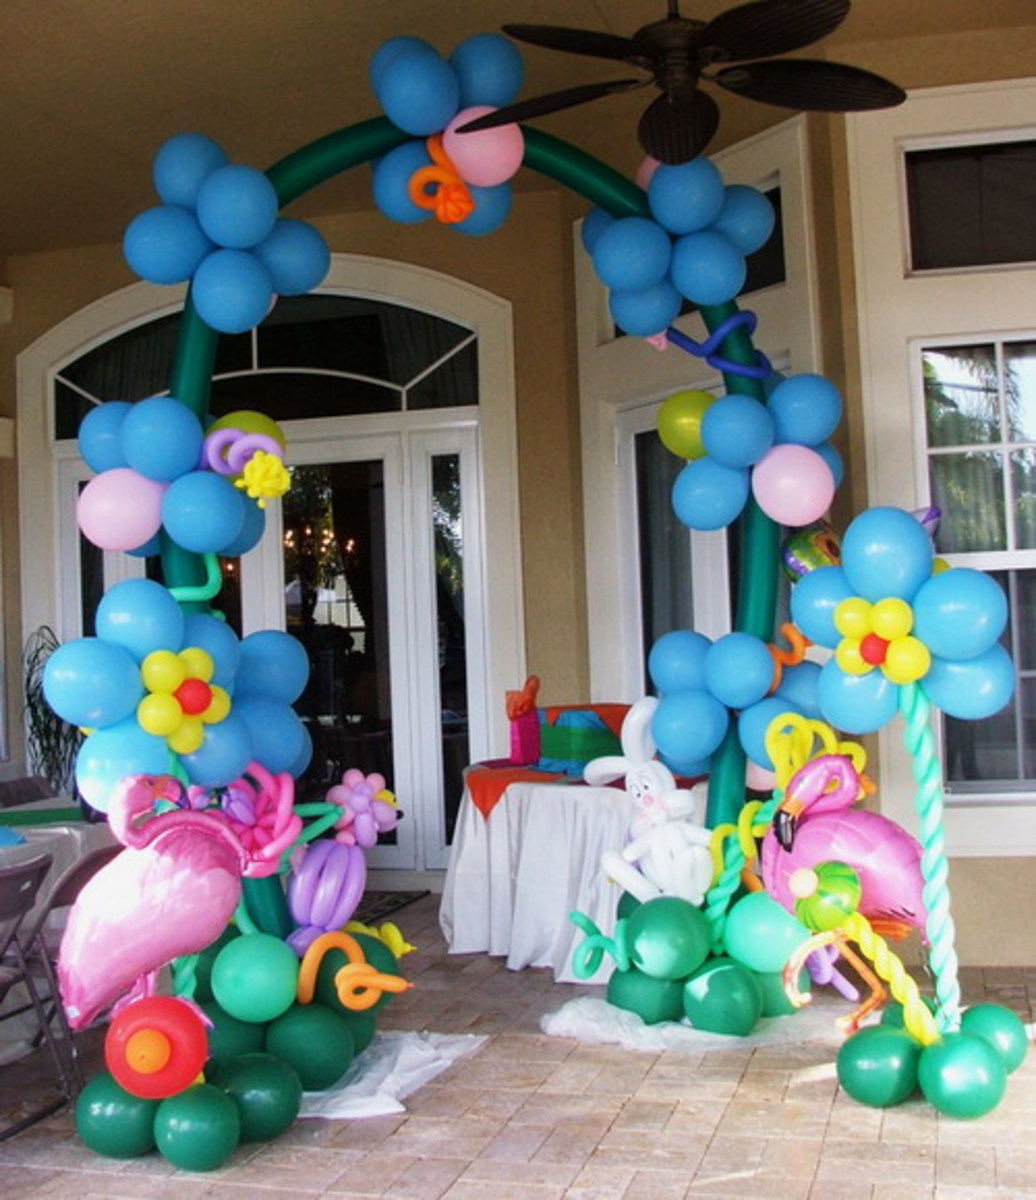 Wonderland balloon arch from http://www.balloons.dreamark.net/kids.html